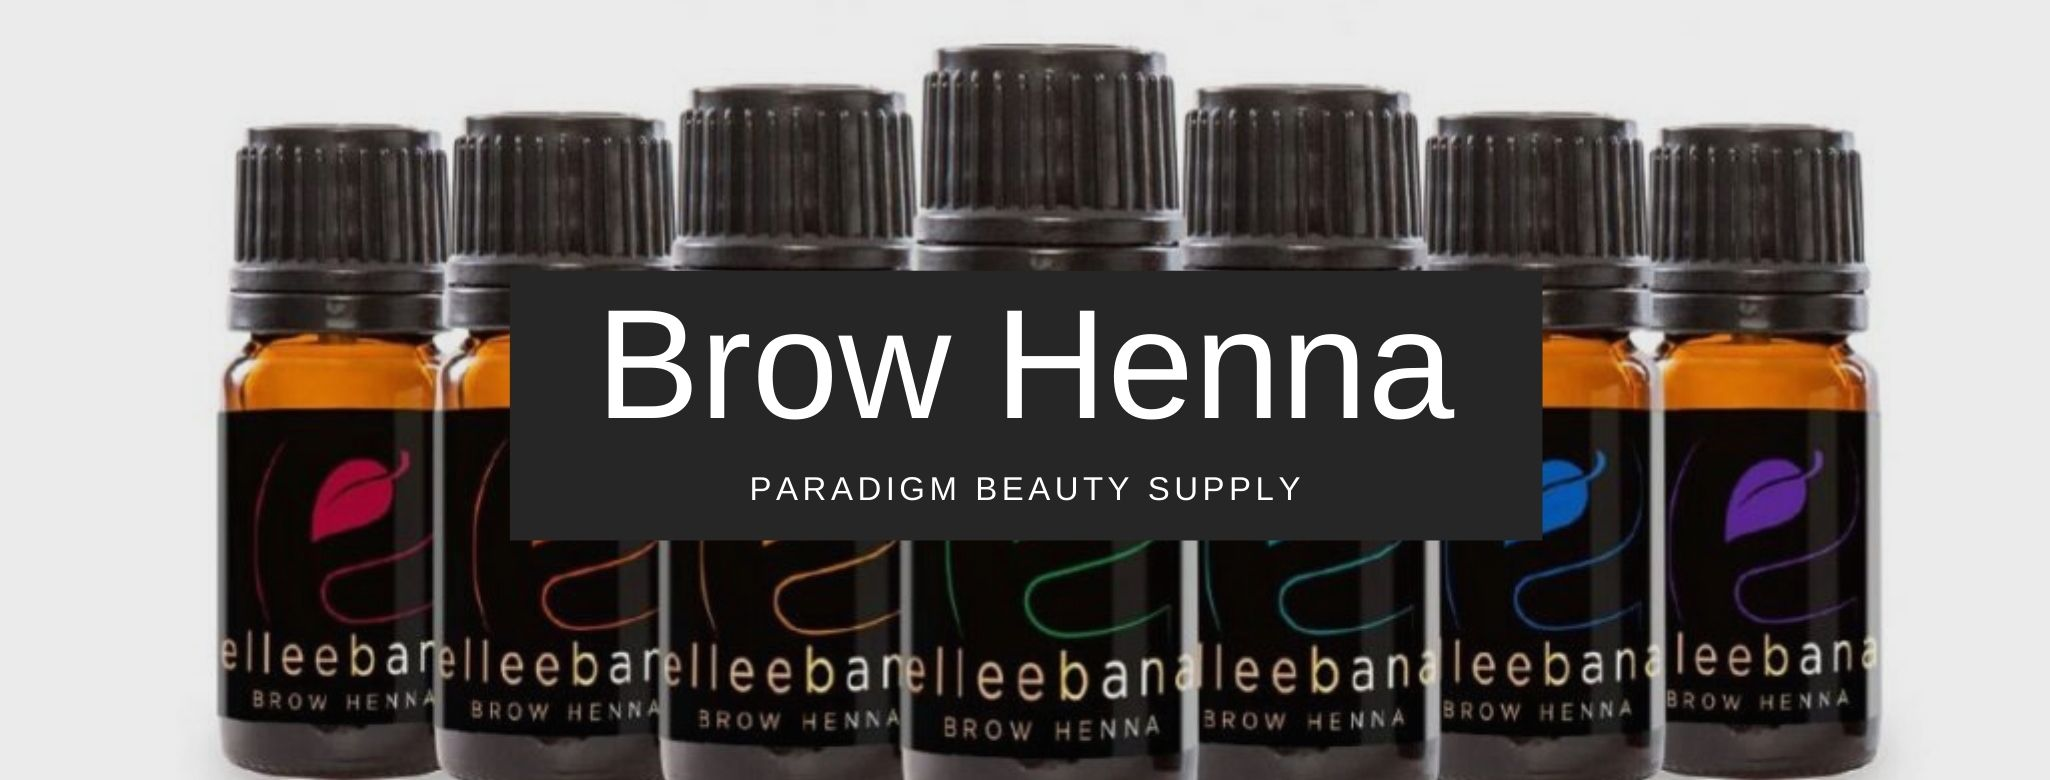 Brow Henna Products